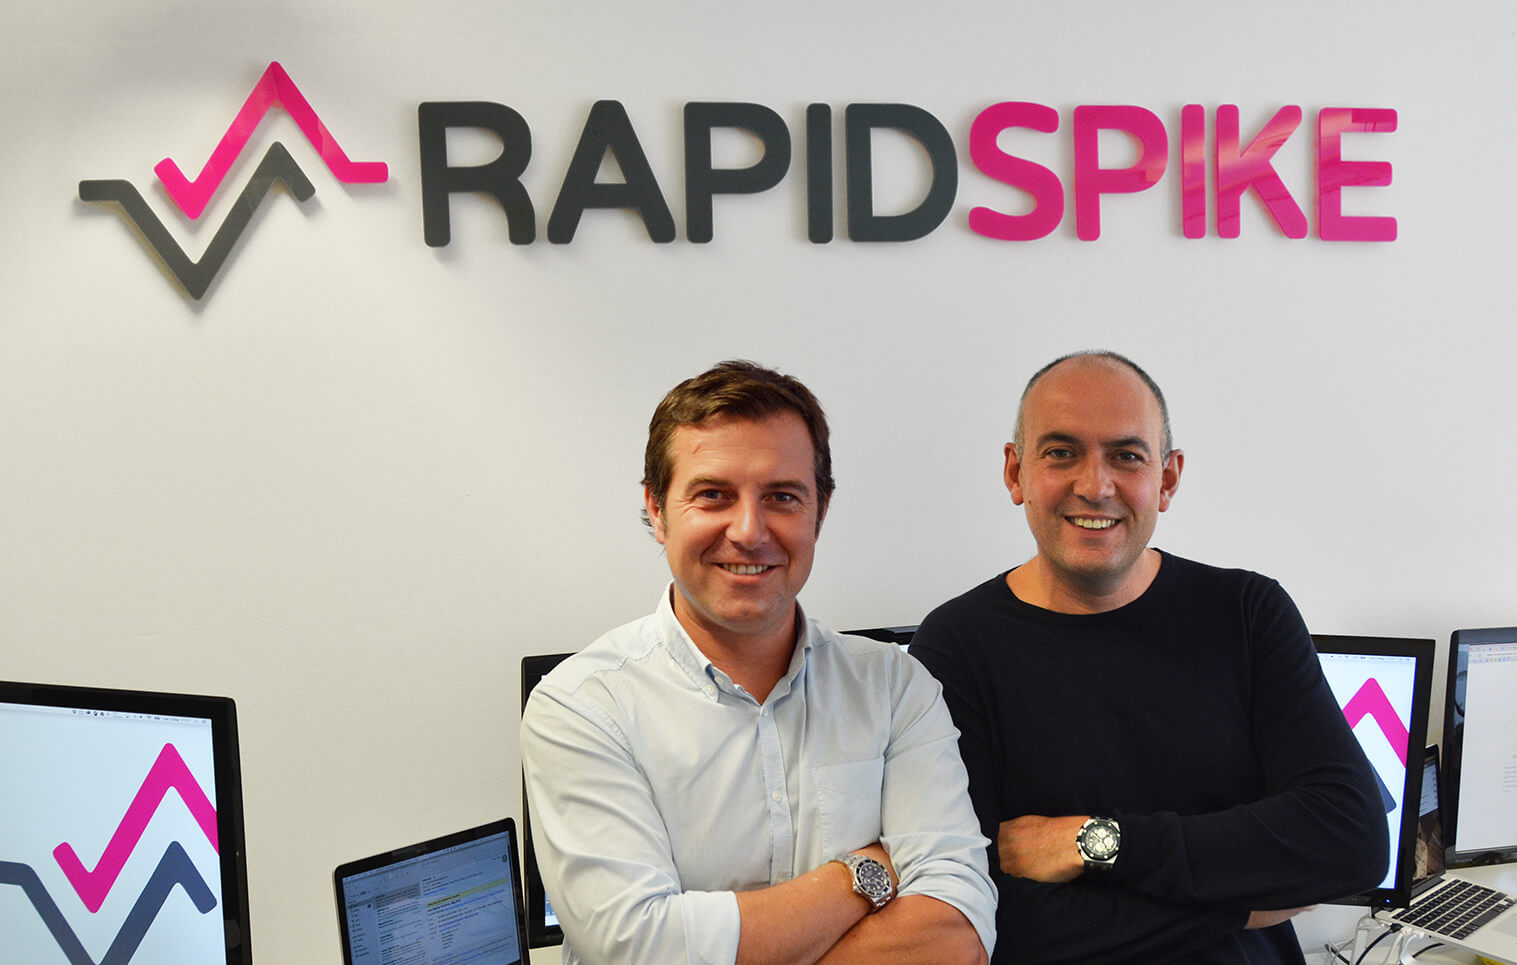 Robin and Andrew - Co-Founders of RapidSpike